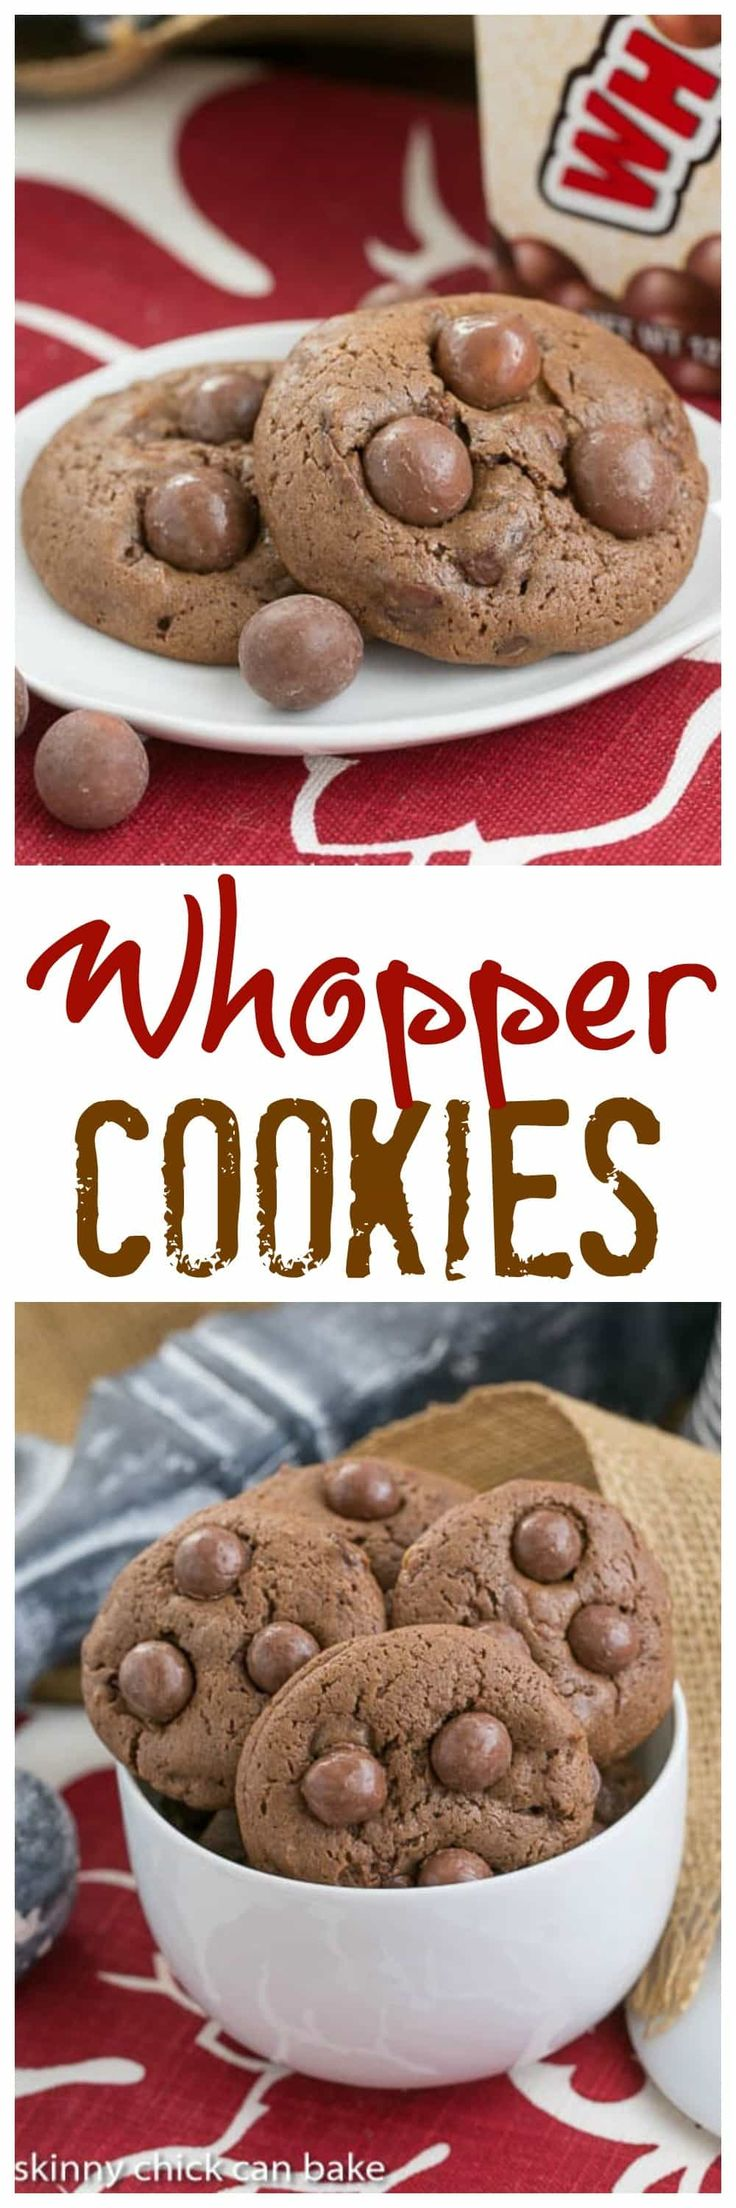 Whopper Cookies | Chocolate malt cookies studded with malted milk balls @lizzydo